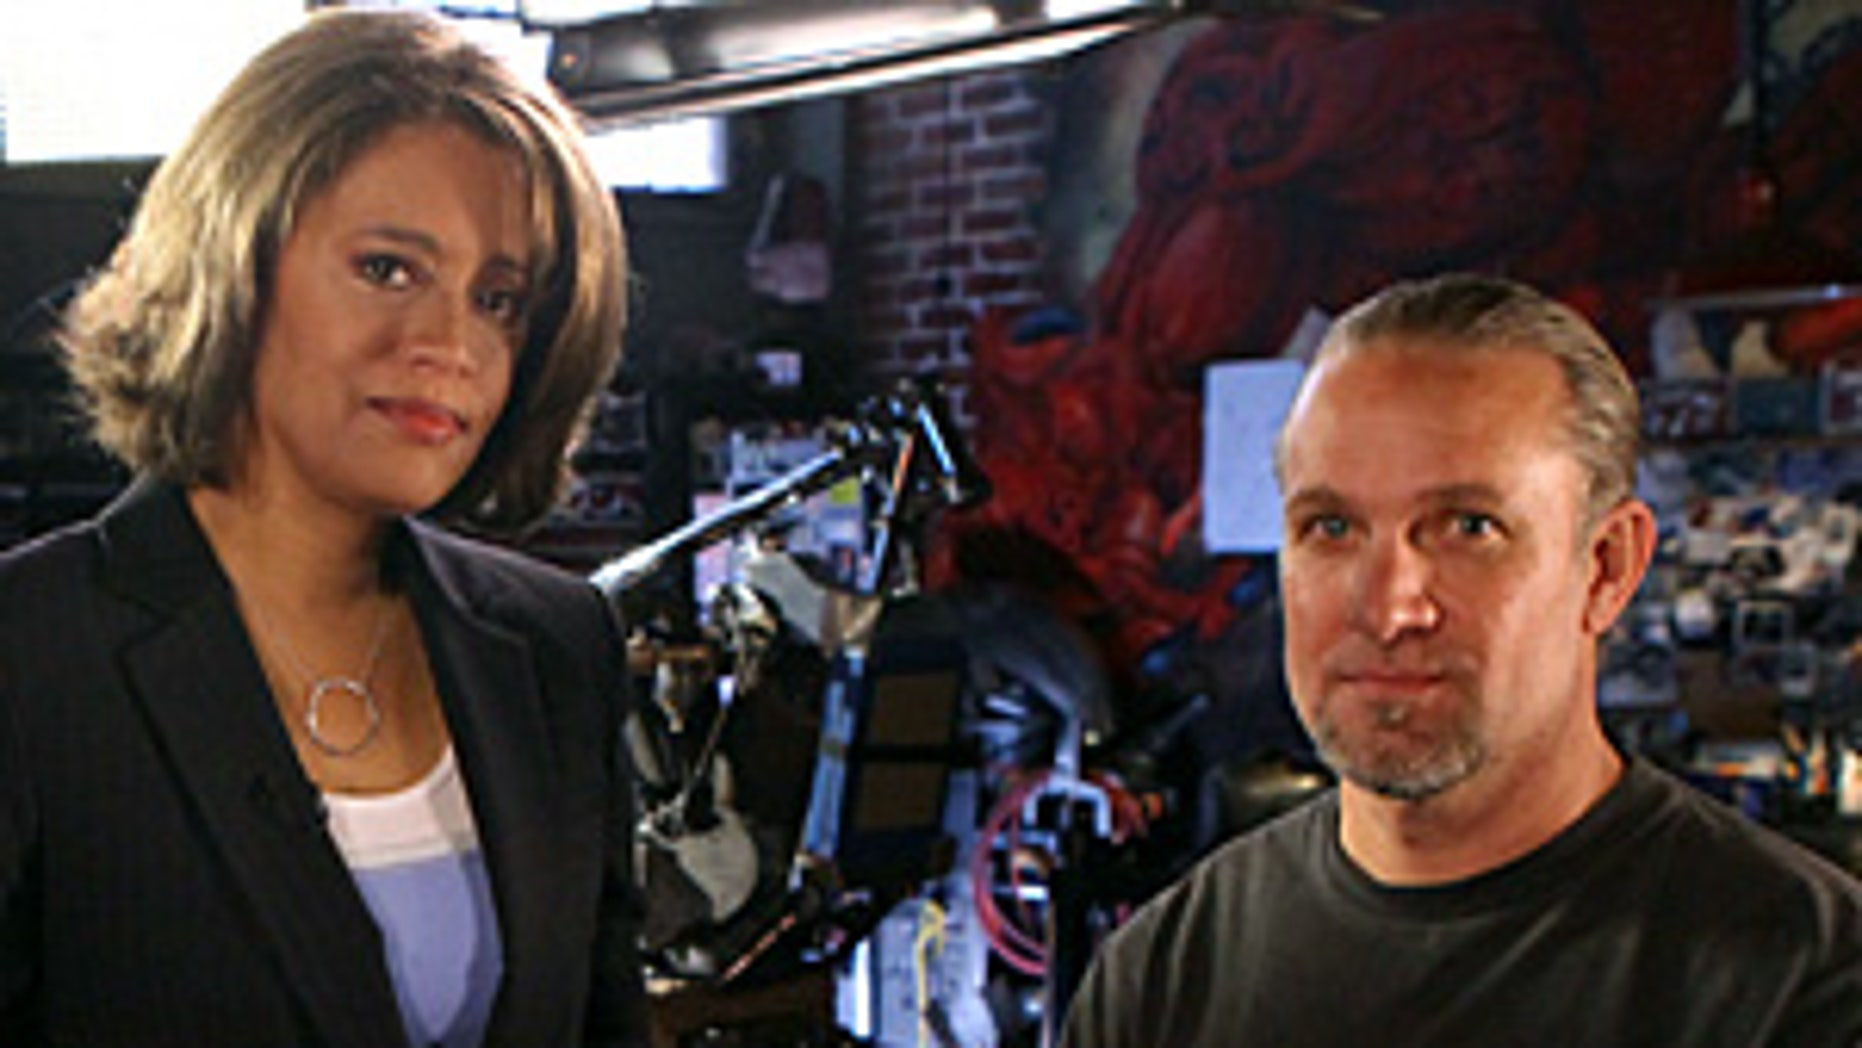 "NIGHTLINE - In his first interview since the break-up of his marriage to Oscar-winning actress Sandra Bullock, Jesse James sits down with ""Nightline�s"" Vicki Mabrey to tell his side of the story and respond to the tough questions. �Nightline�s� exclusive interview with Jesse James airs on ABC News' ""Nightline"" Tuesday, May 25, 2010 at 11:35pm (ET/PT). (ABC/Patrick Wymore) VICKY MABREY, JESSE JAMES"